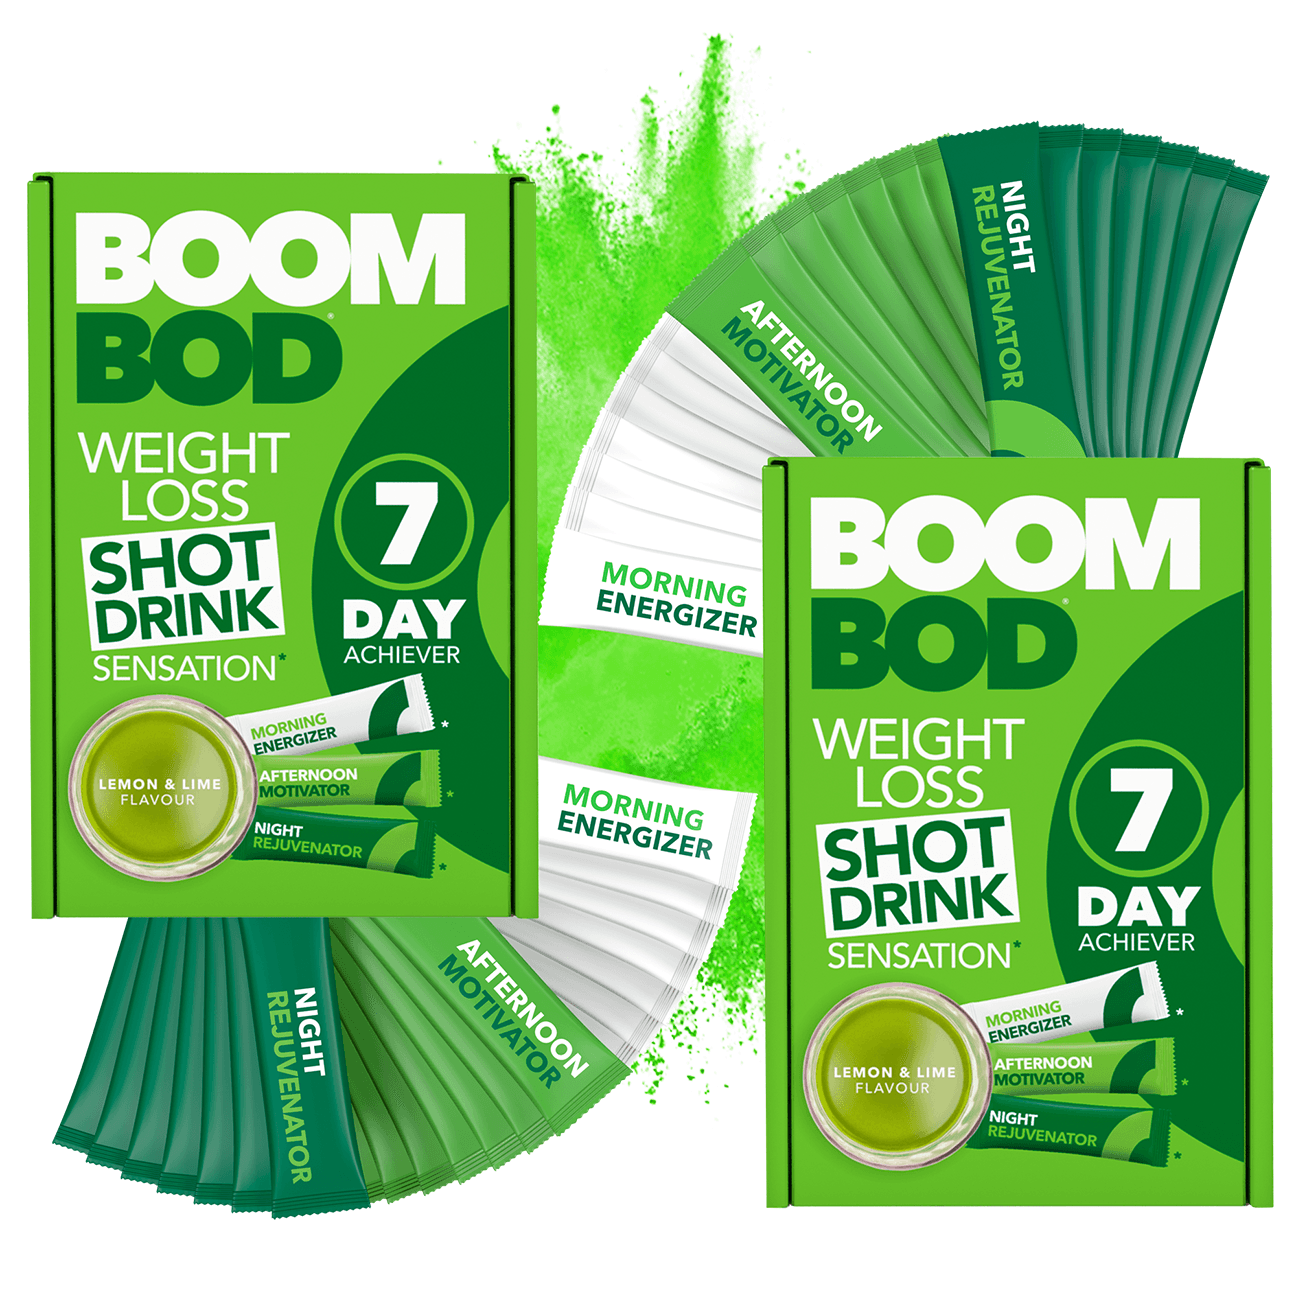 Boombod 14 Day Achiever | Lemon Lime | Weight Loss Shot Drink